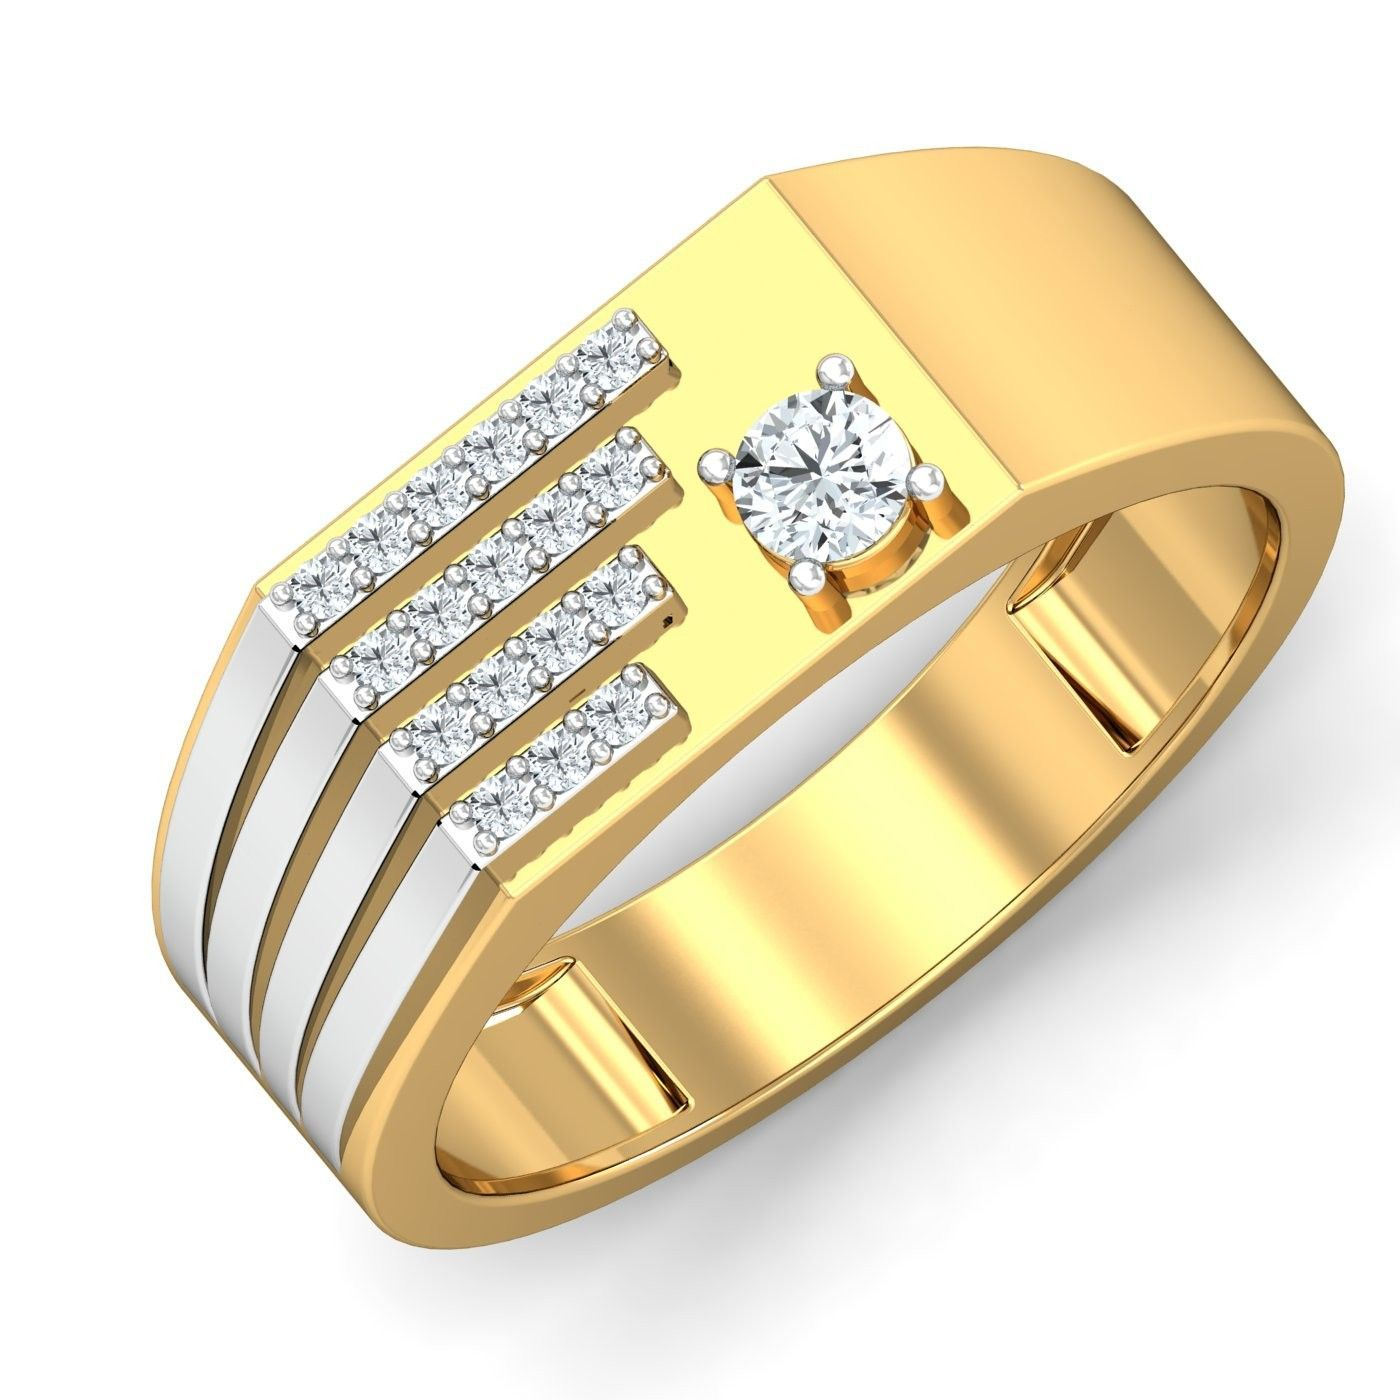 Silver Rings For Mens With Price Mens Ring Designs In Gold Gold